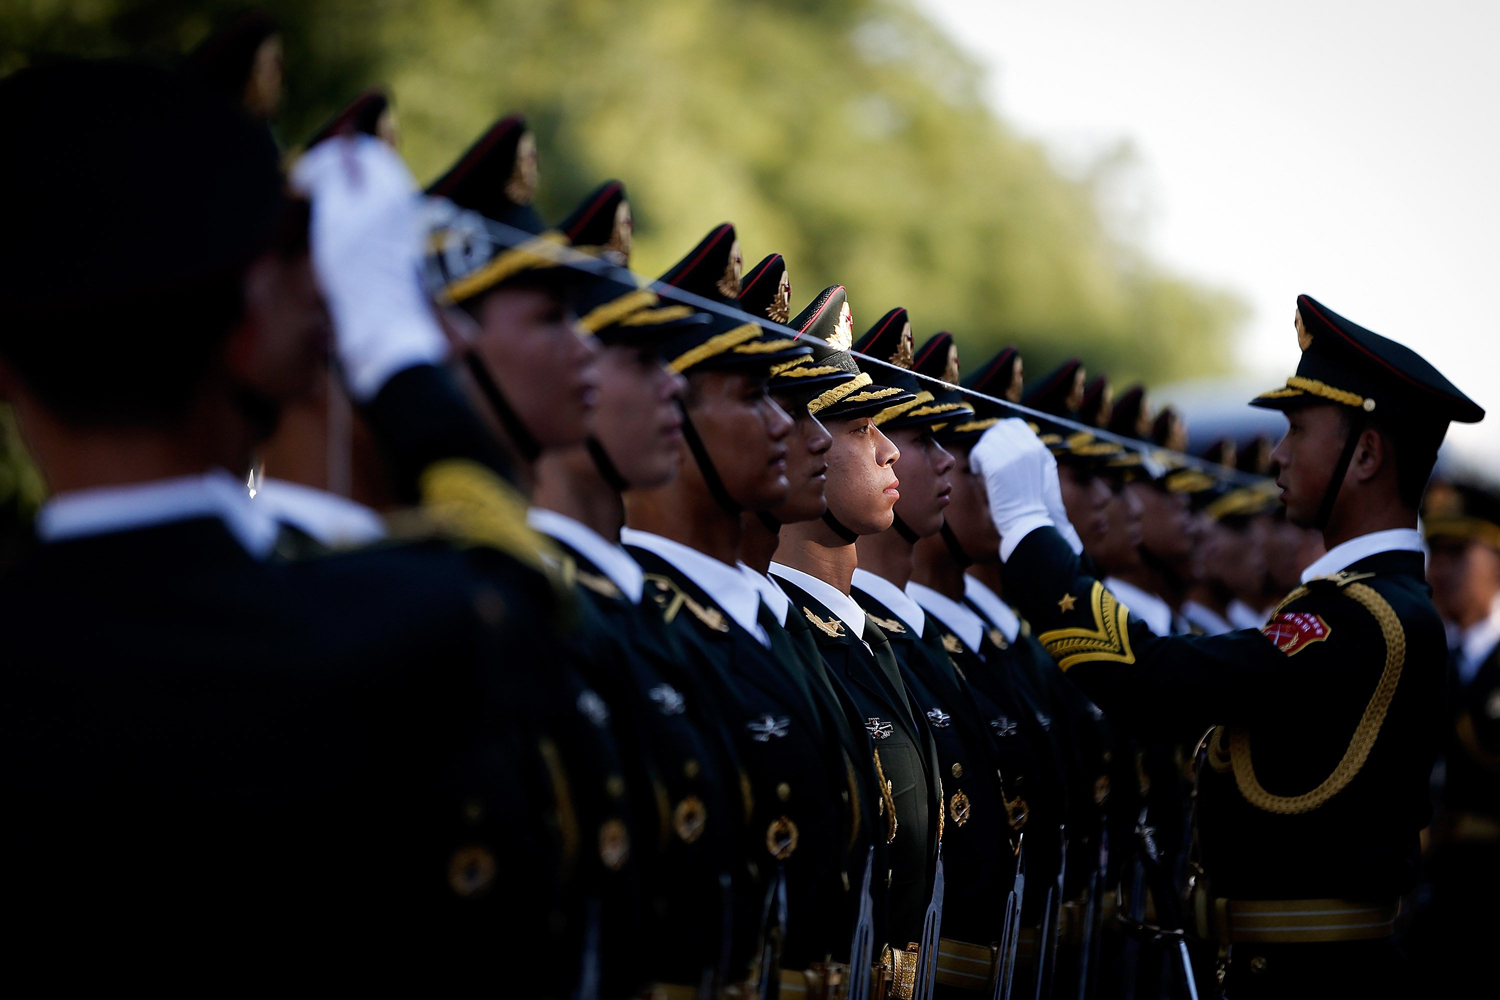 Sept. 4, 2014. Chinese People's Liberation Army soldiers and officer use ropes to measure positions of honor guard members before a welcoming ceremony for Malaysia's Yang di-Pertuan Agong Tuanku Alhaj Abdul Halim Mu'adzam Shah outside the Great Hall of the People in Beijing, China.